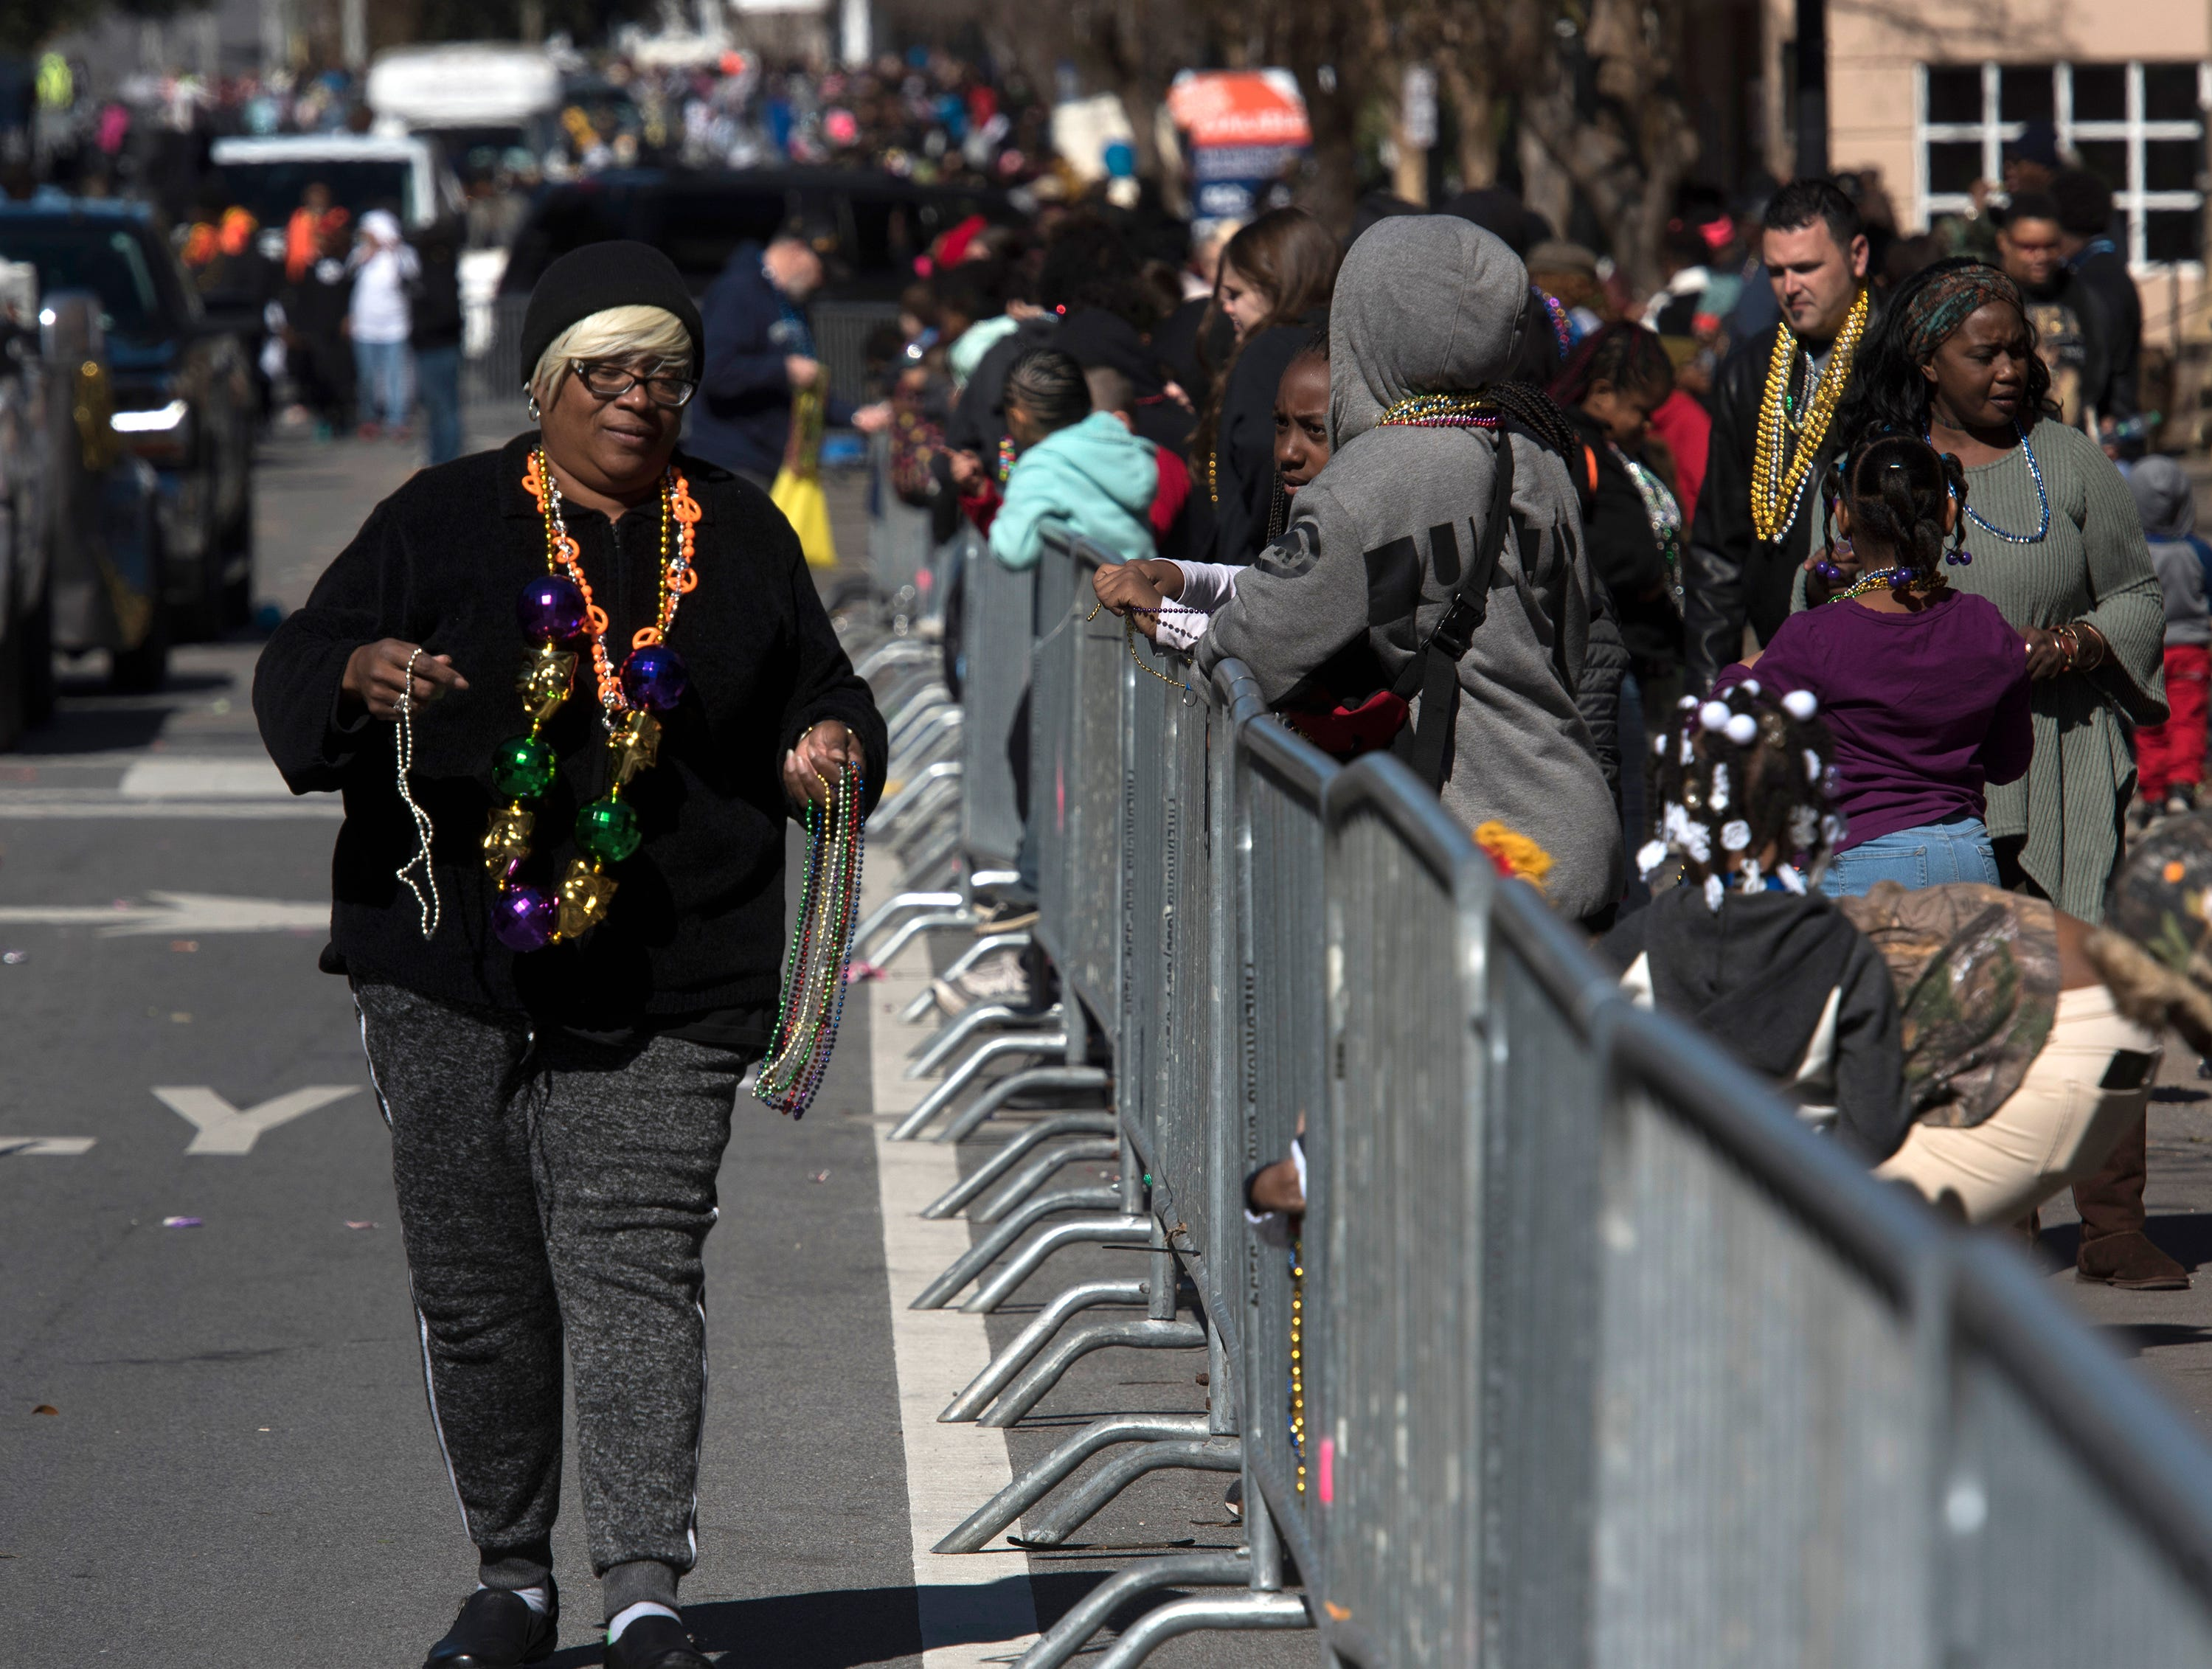 Wanda Baker passes out beads and trinkets while taking part in the annual Martin Luther King, Jr. parade in downtown Pensacola on Monday, Jan. 21, 2019.